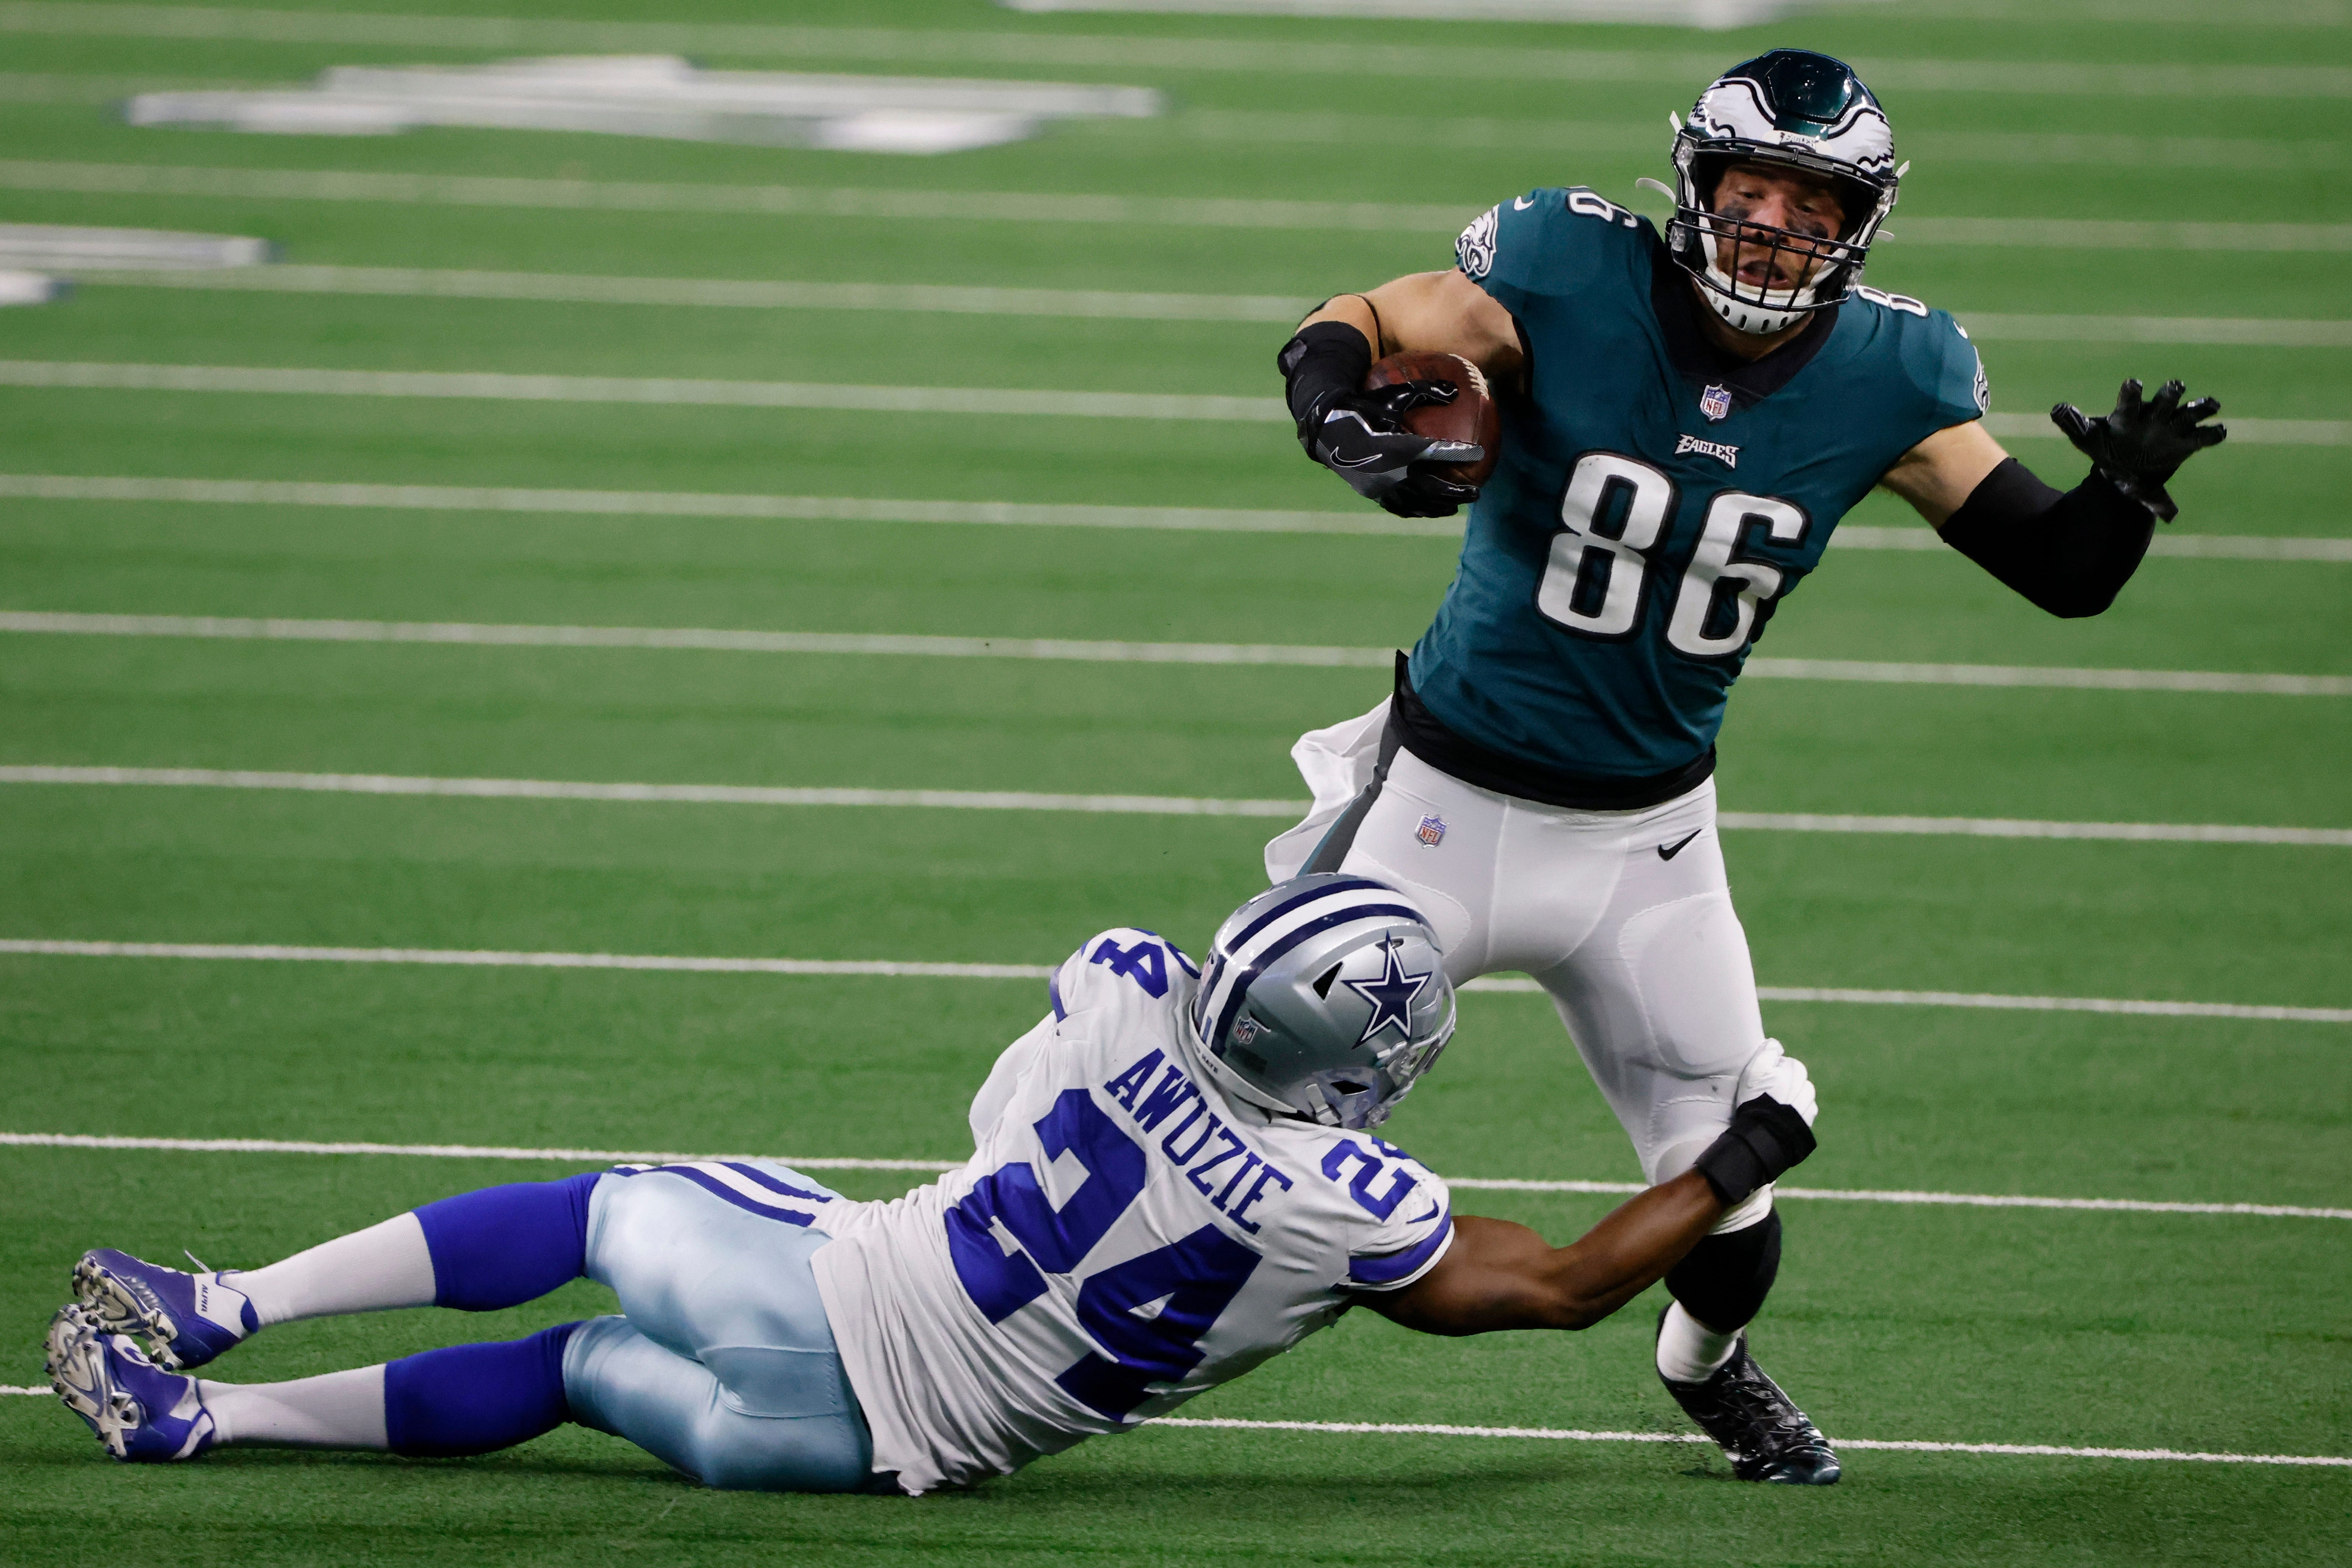 Eagles place tight end Zach Ertz on COVID-19 list ahead of Cowboys matchup